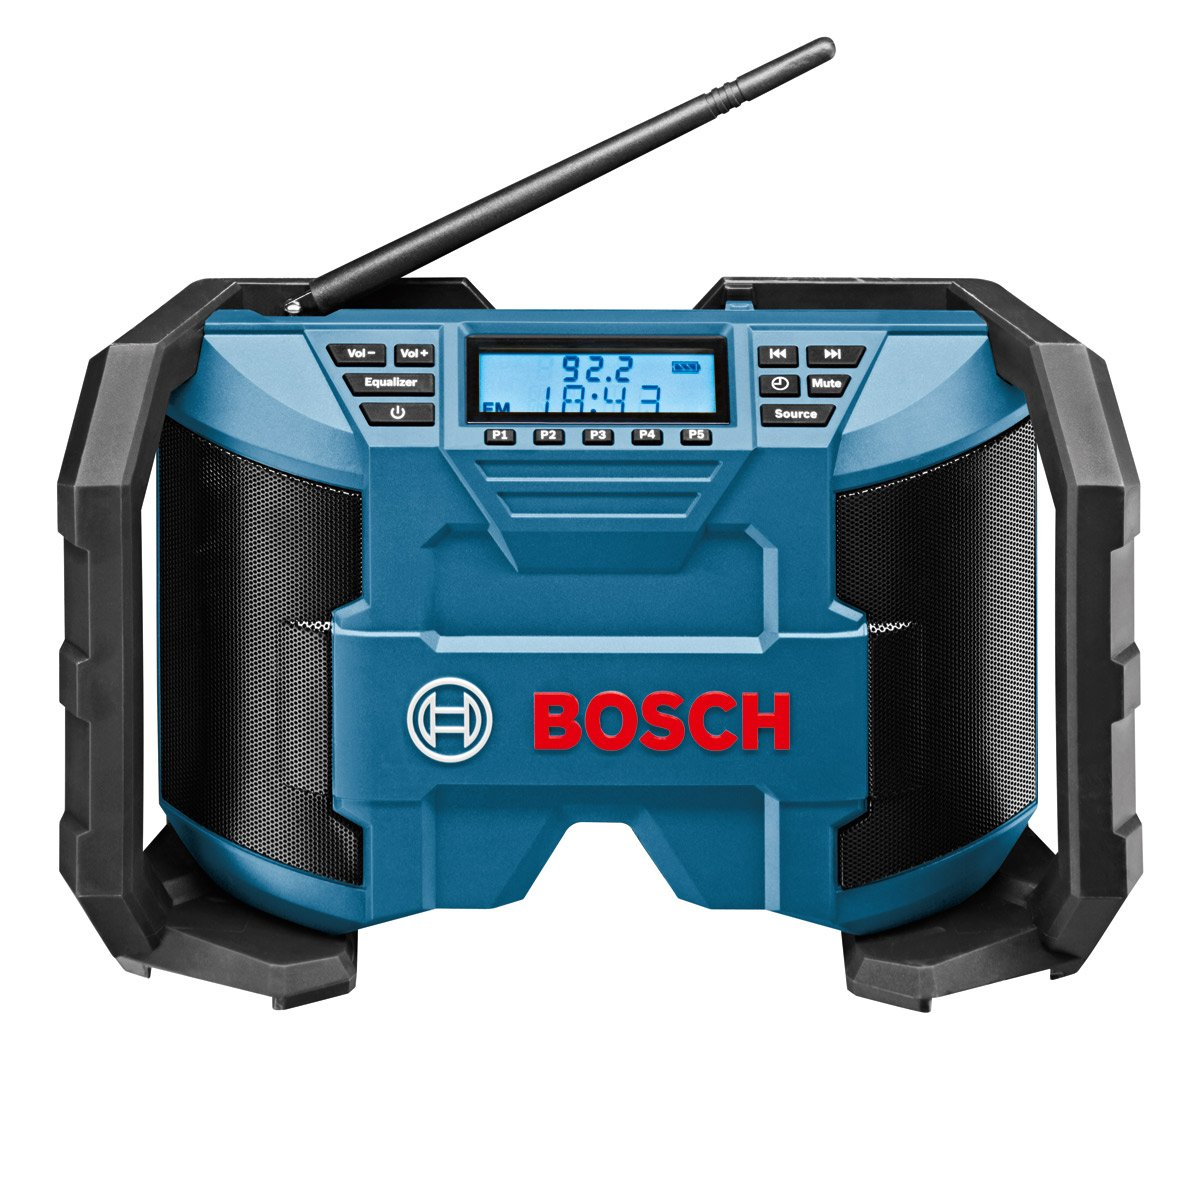 Радио Bosch Gml 10.8 v-li (0.601.429.200) набор bosch радио gml 50 power box 0 601 429 600 адаптер gaa 18v 24